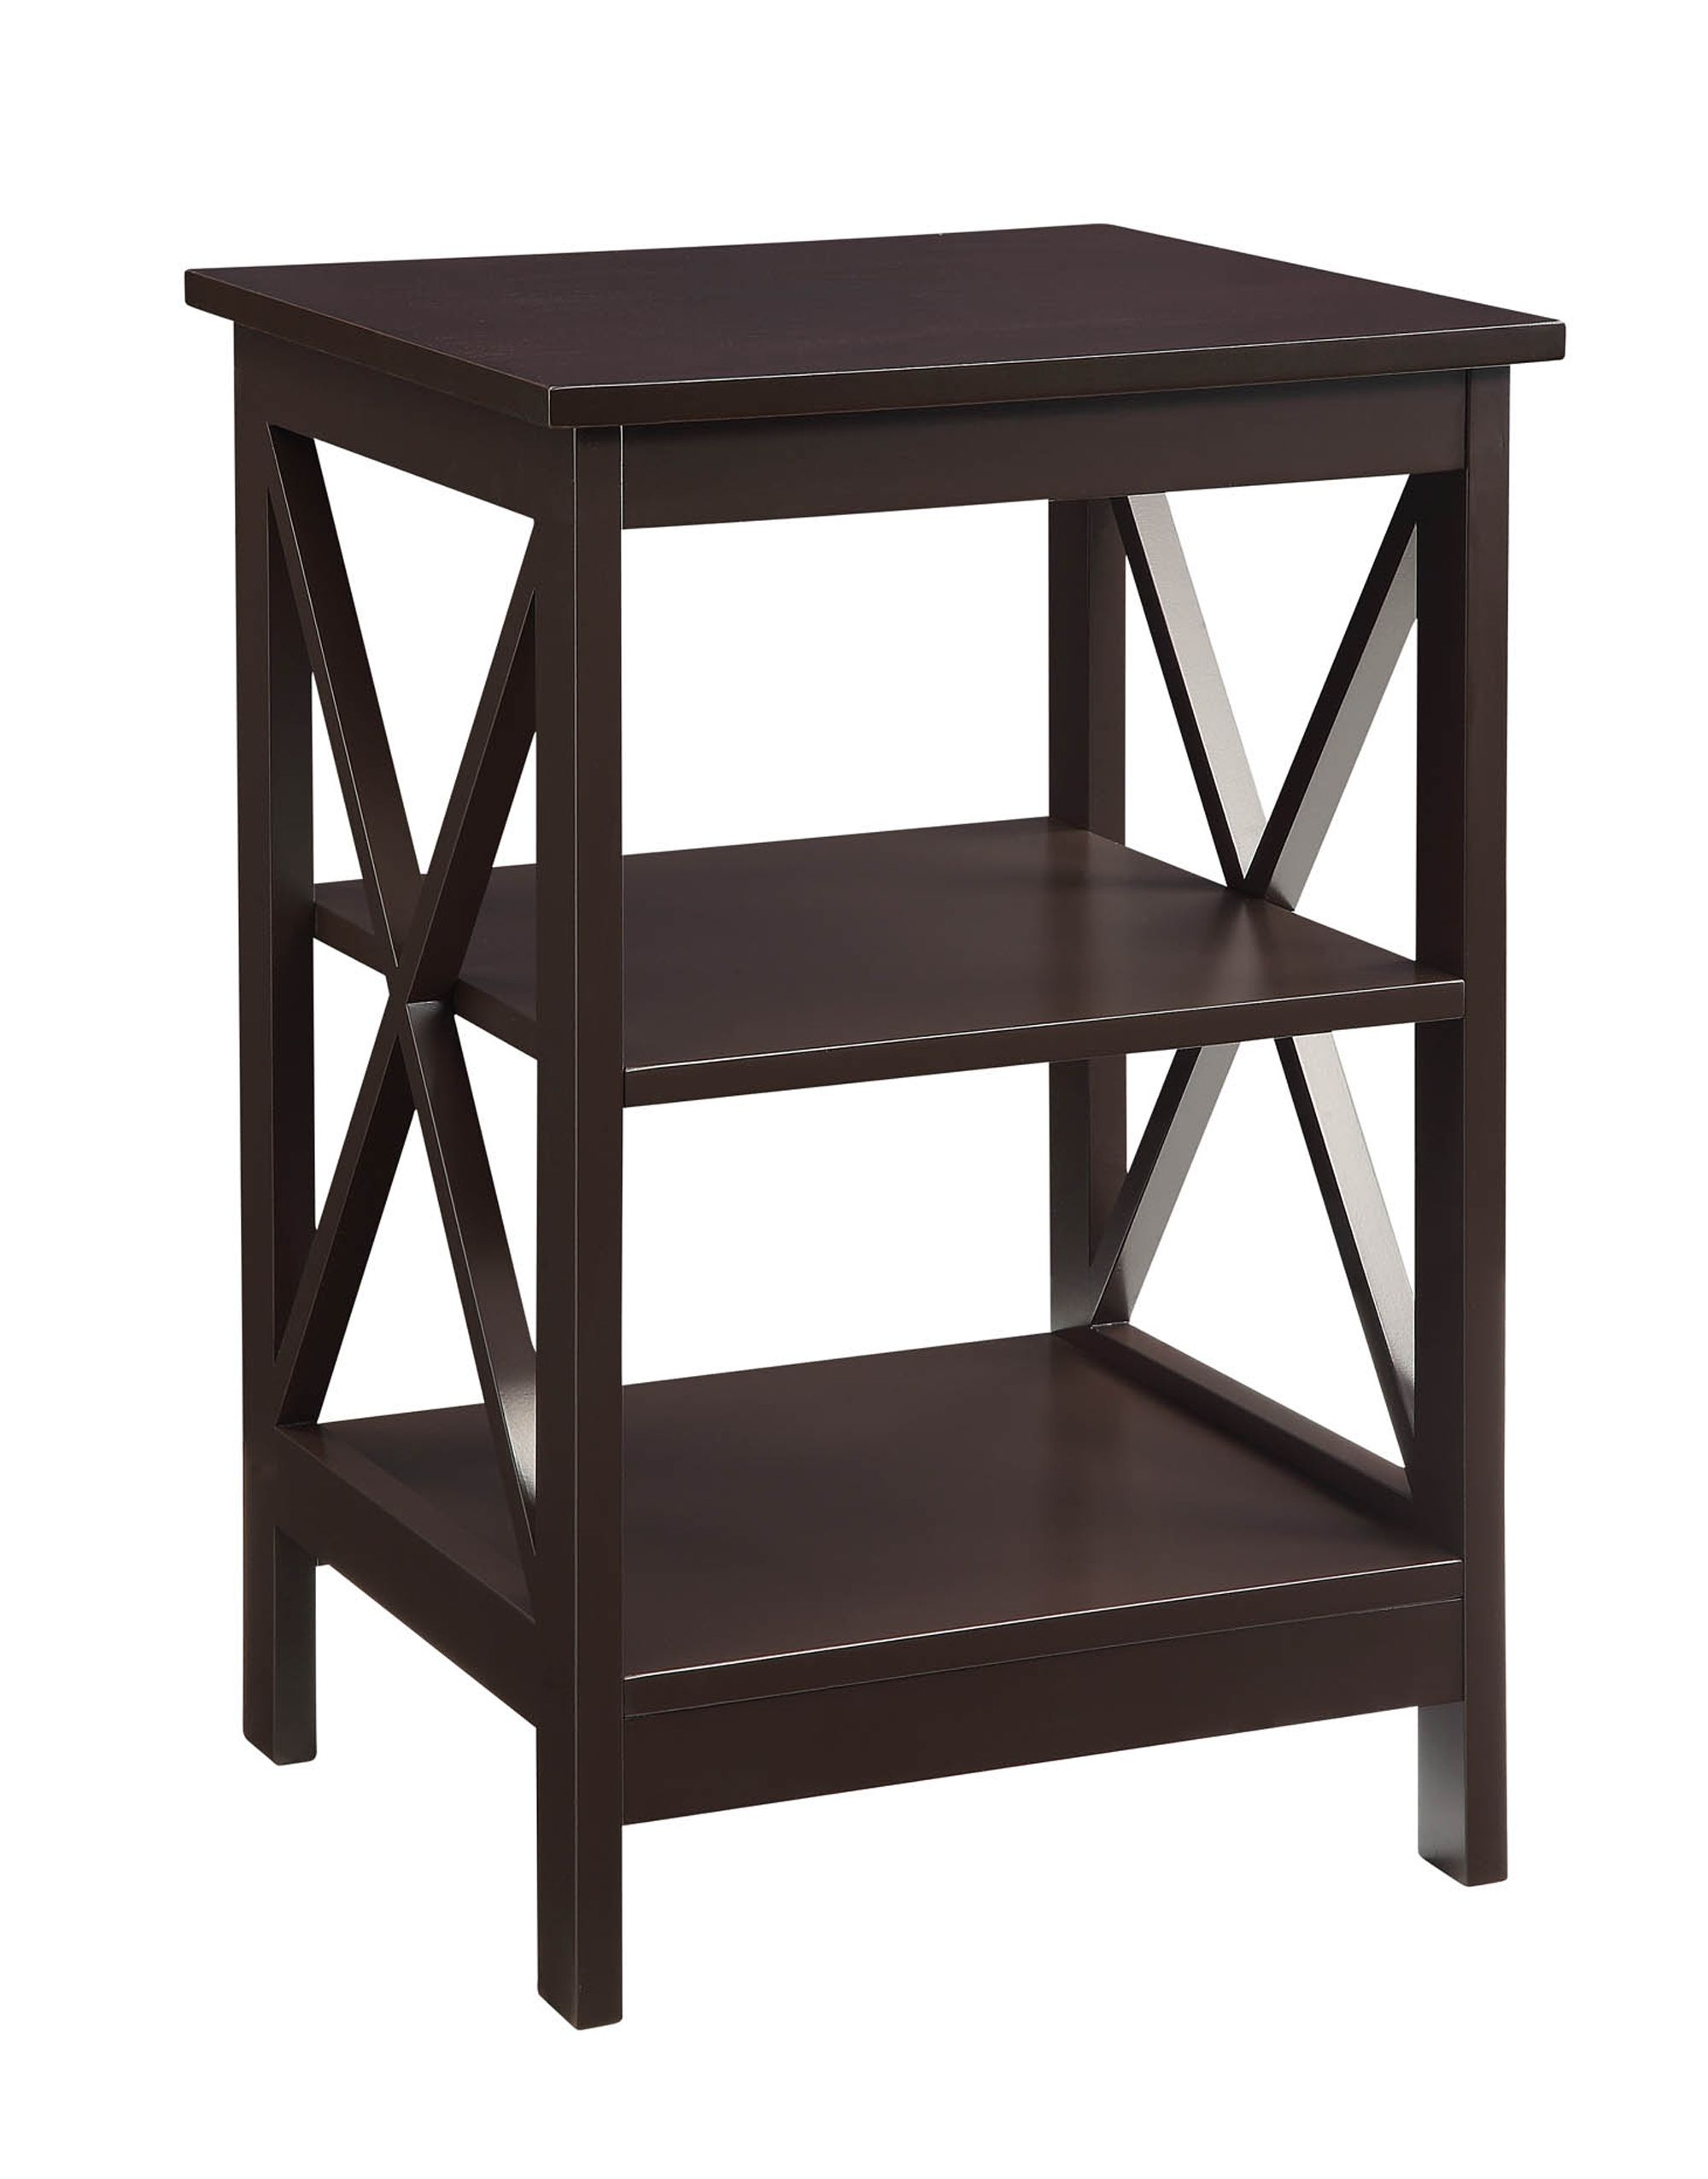 the threshold owings collection side table espresso perfect accent addition any homes decor high and includes drawer coastal style lighting hardwood floor patio dining white drum